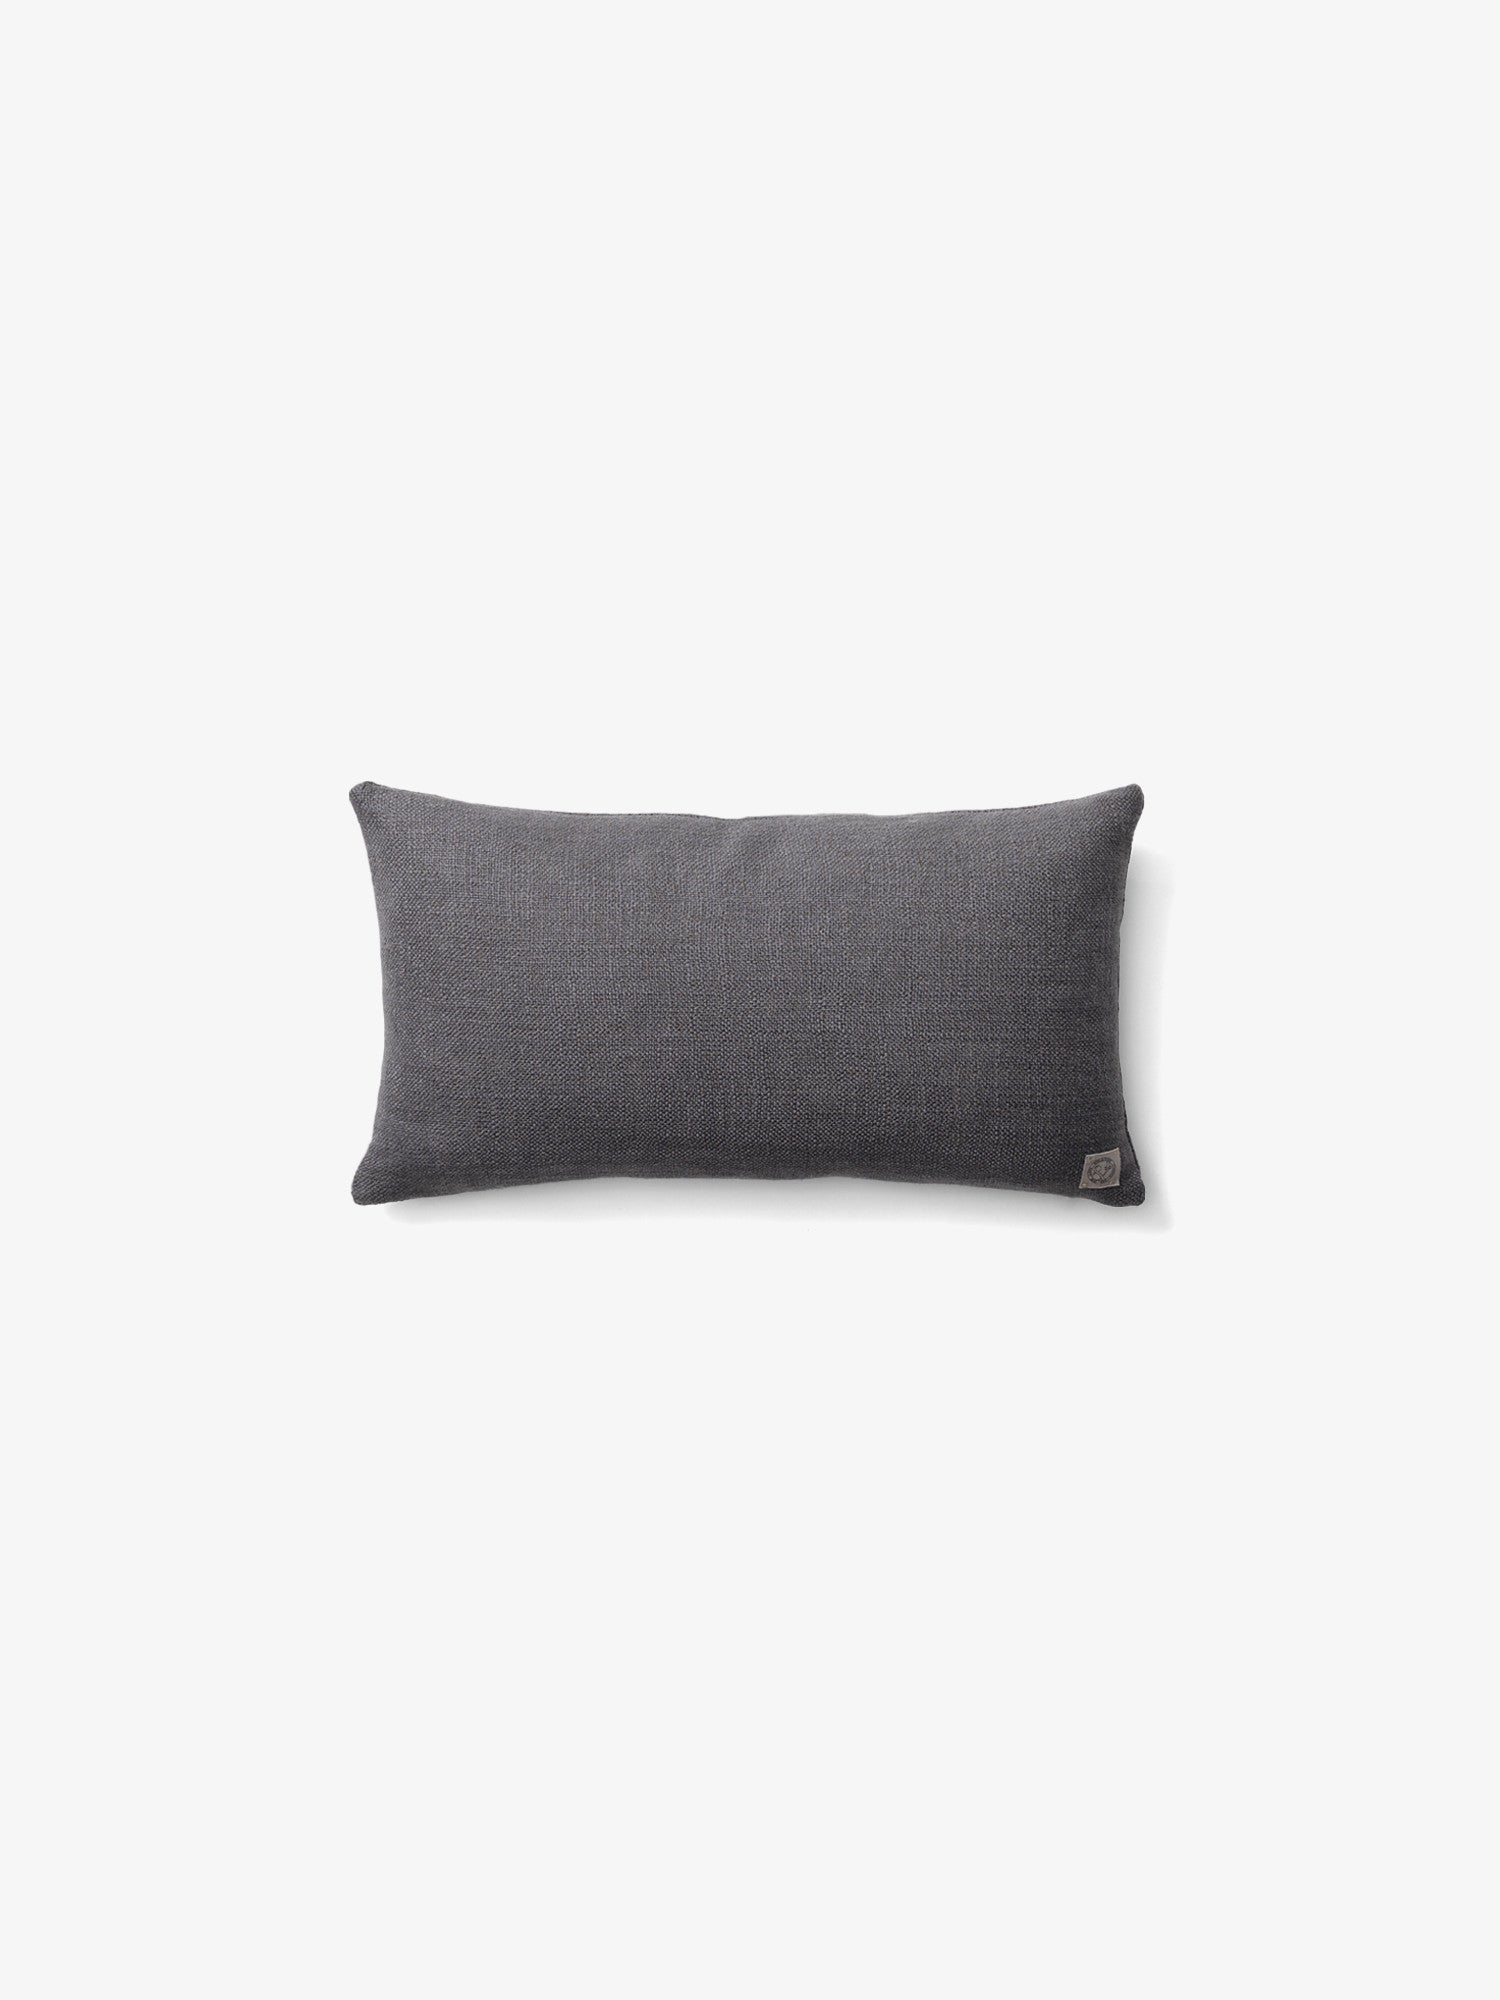 Collect 30x50cm - Heavy Linen Cushion